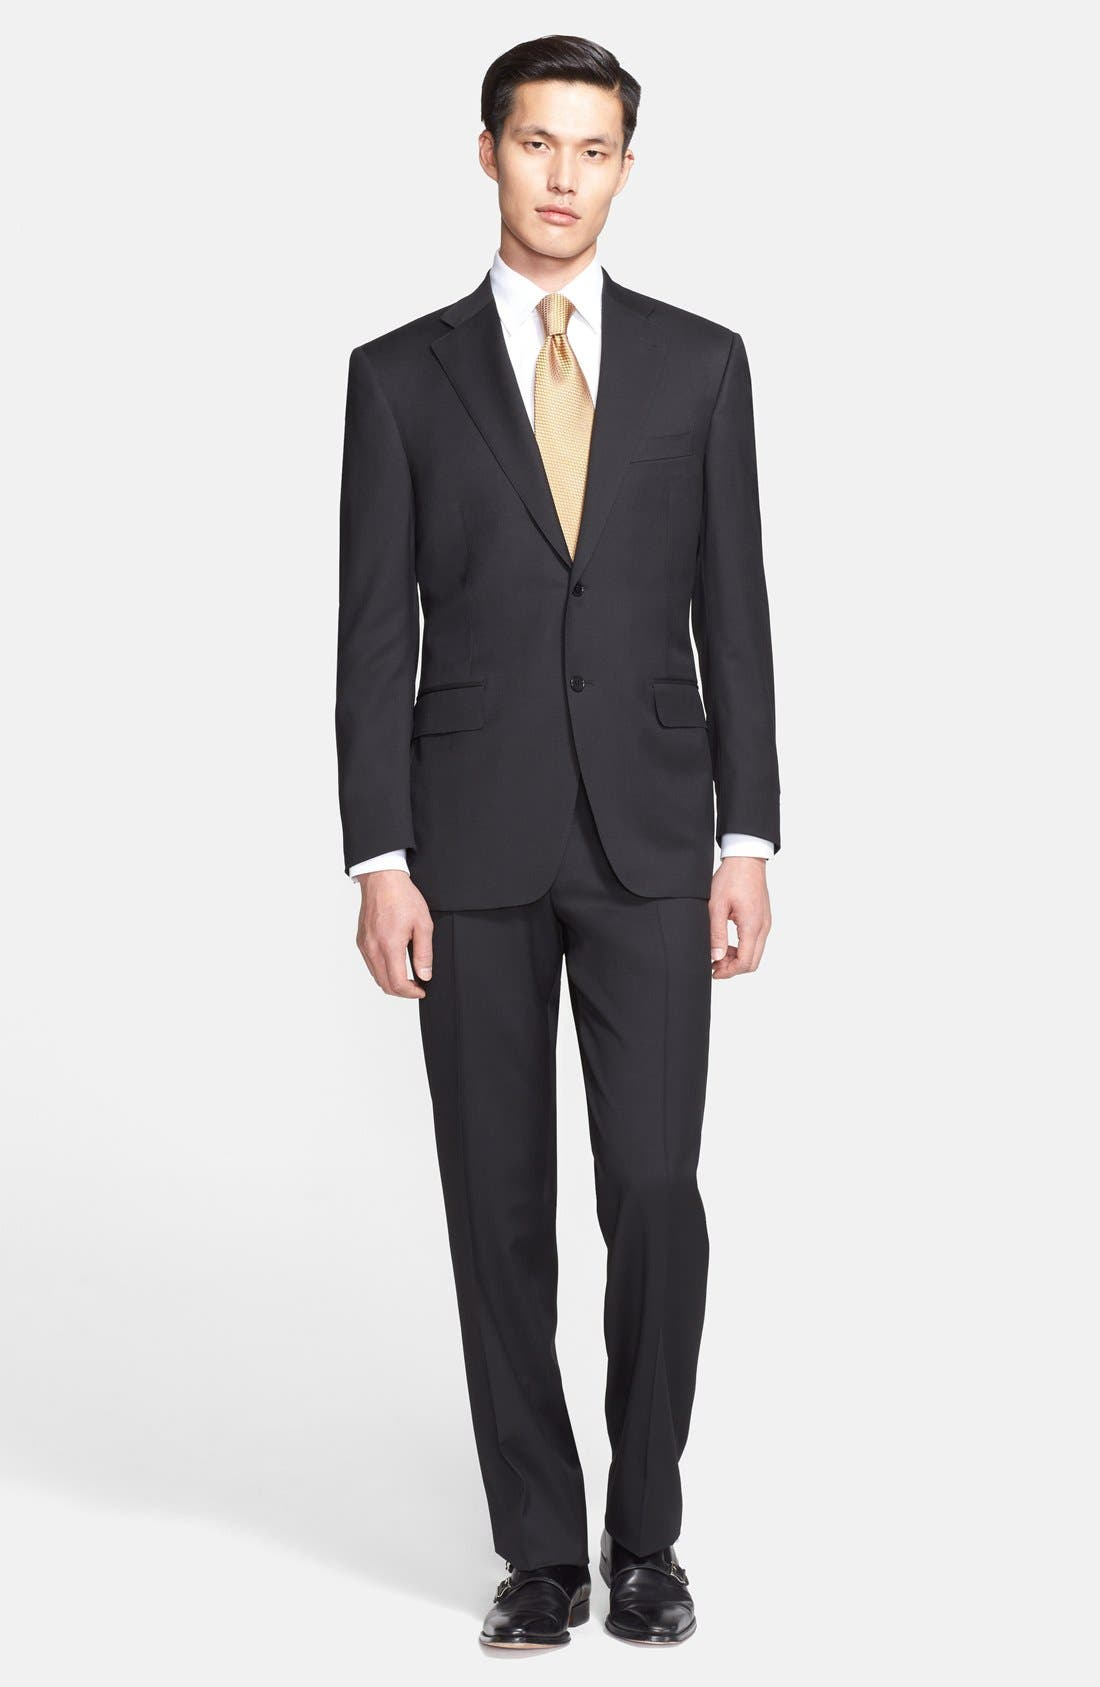 Main Image - Canali Trim Fit Solid Wool Suit